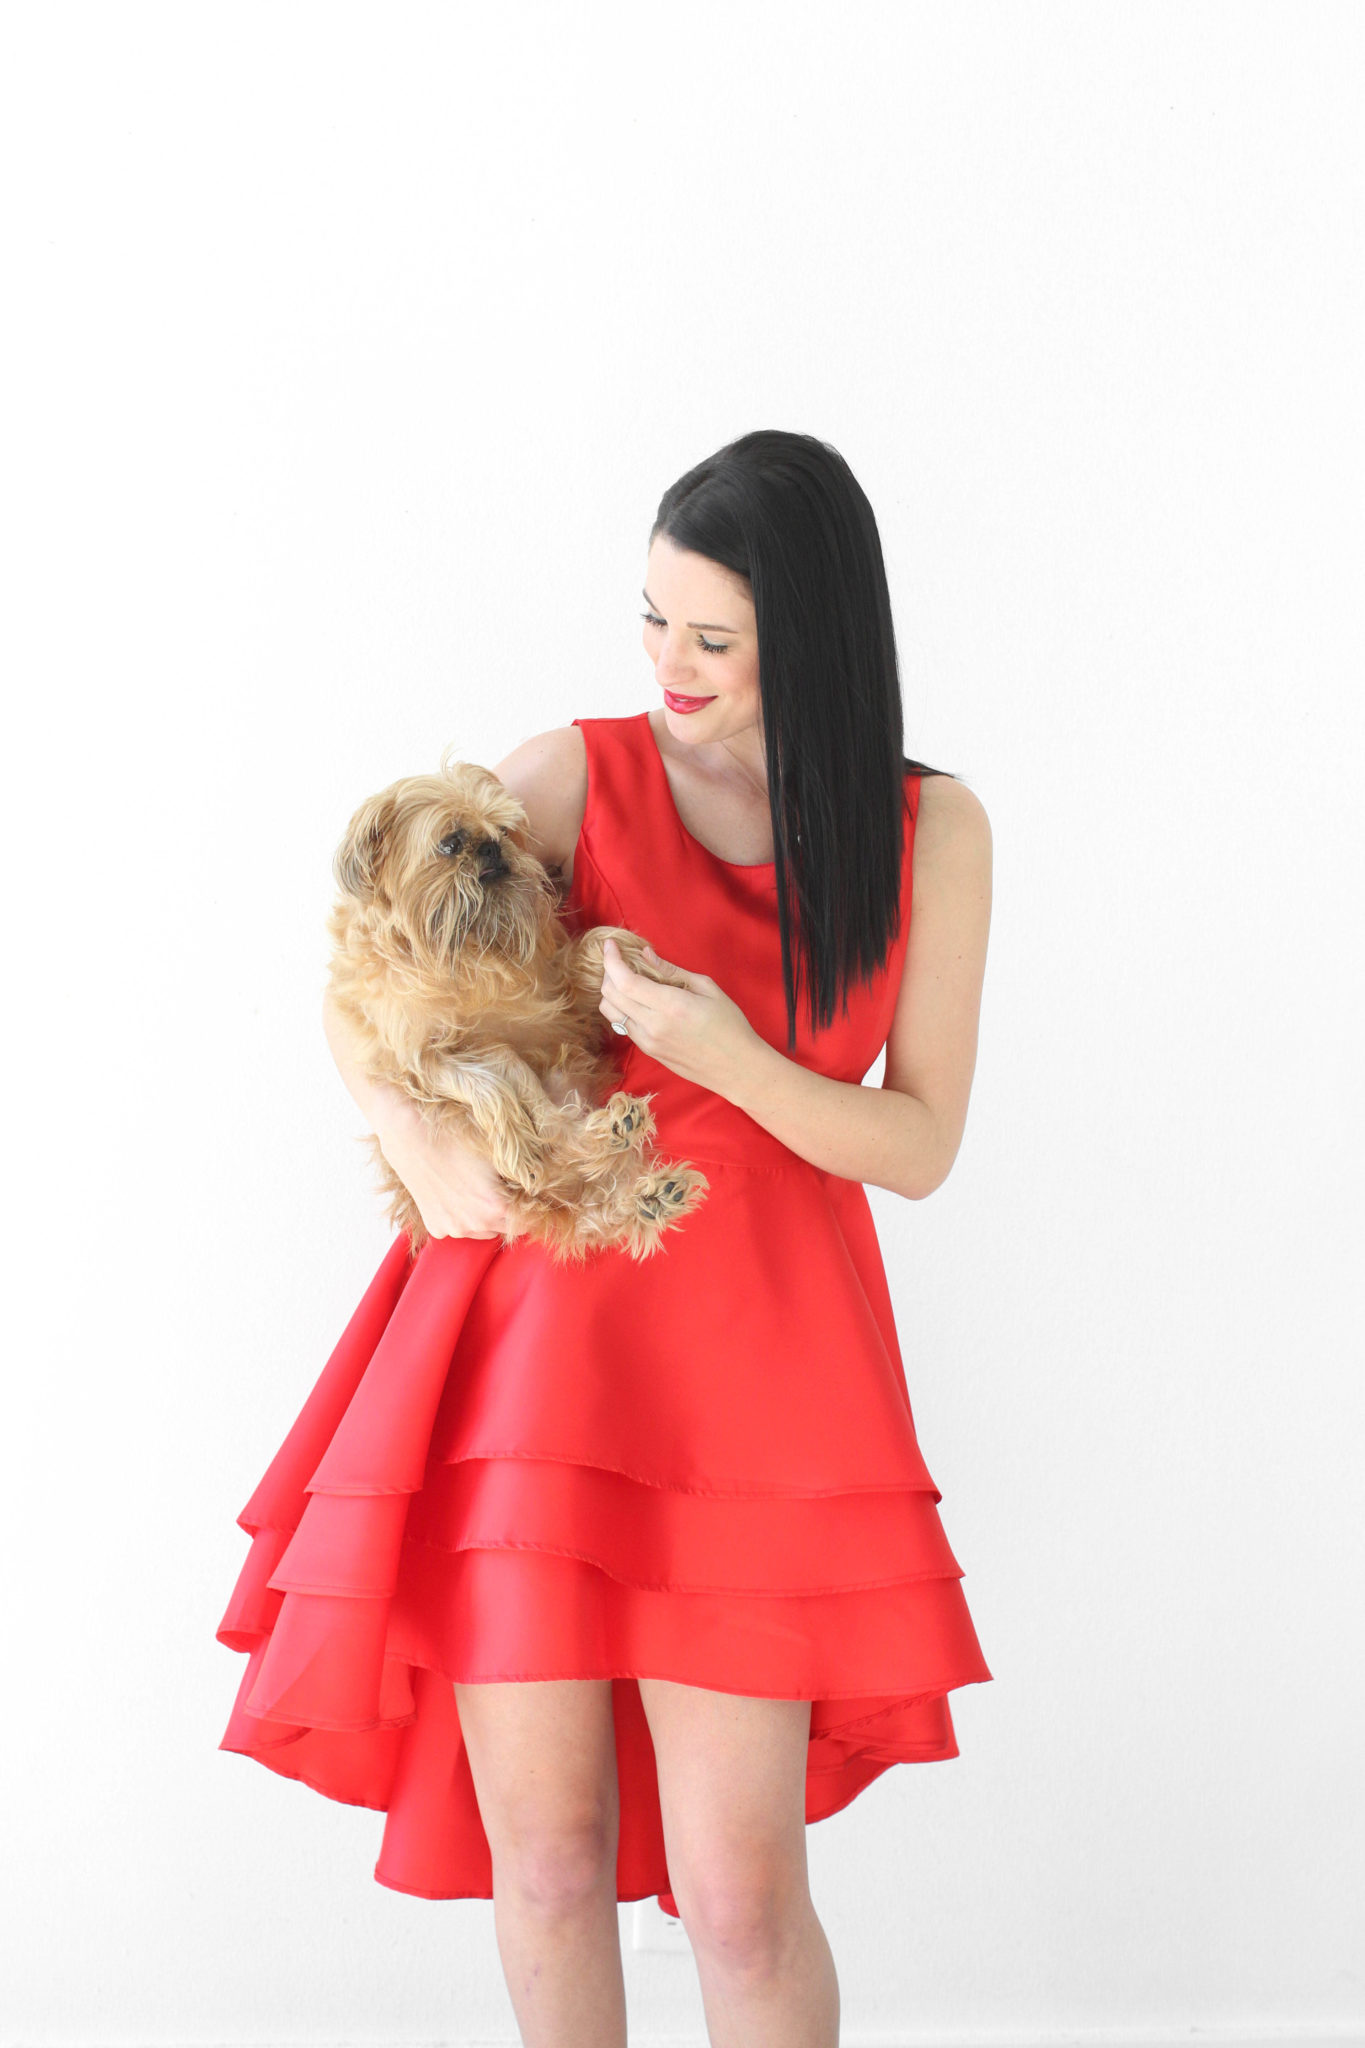 12 Must Have Little Red Dresses for Galentine's Day | classy red dresses | red dress outfit | valentine's day outfit | Valentine's Day dress || Dressed to Kill #reddress #valentinedress #valentineoutfit | Little Red Dresses for Galentine's Day by top US fashion blog, Dressed to Kill: image of a woman holding a small dog and wearing a Jill Jill Stuart red dress, Kelly Wynne bag and Steve Madden shoes